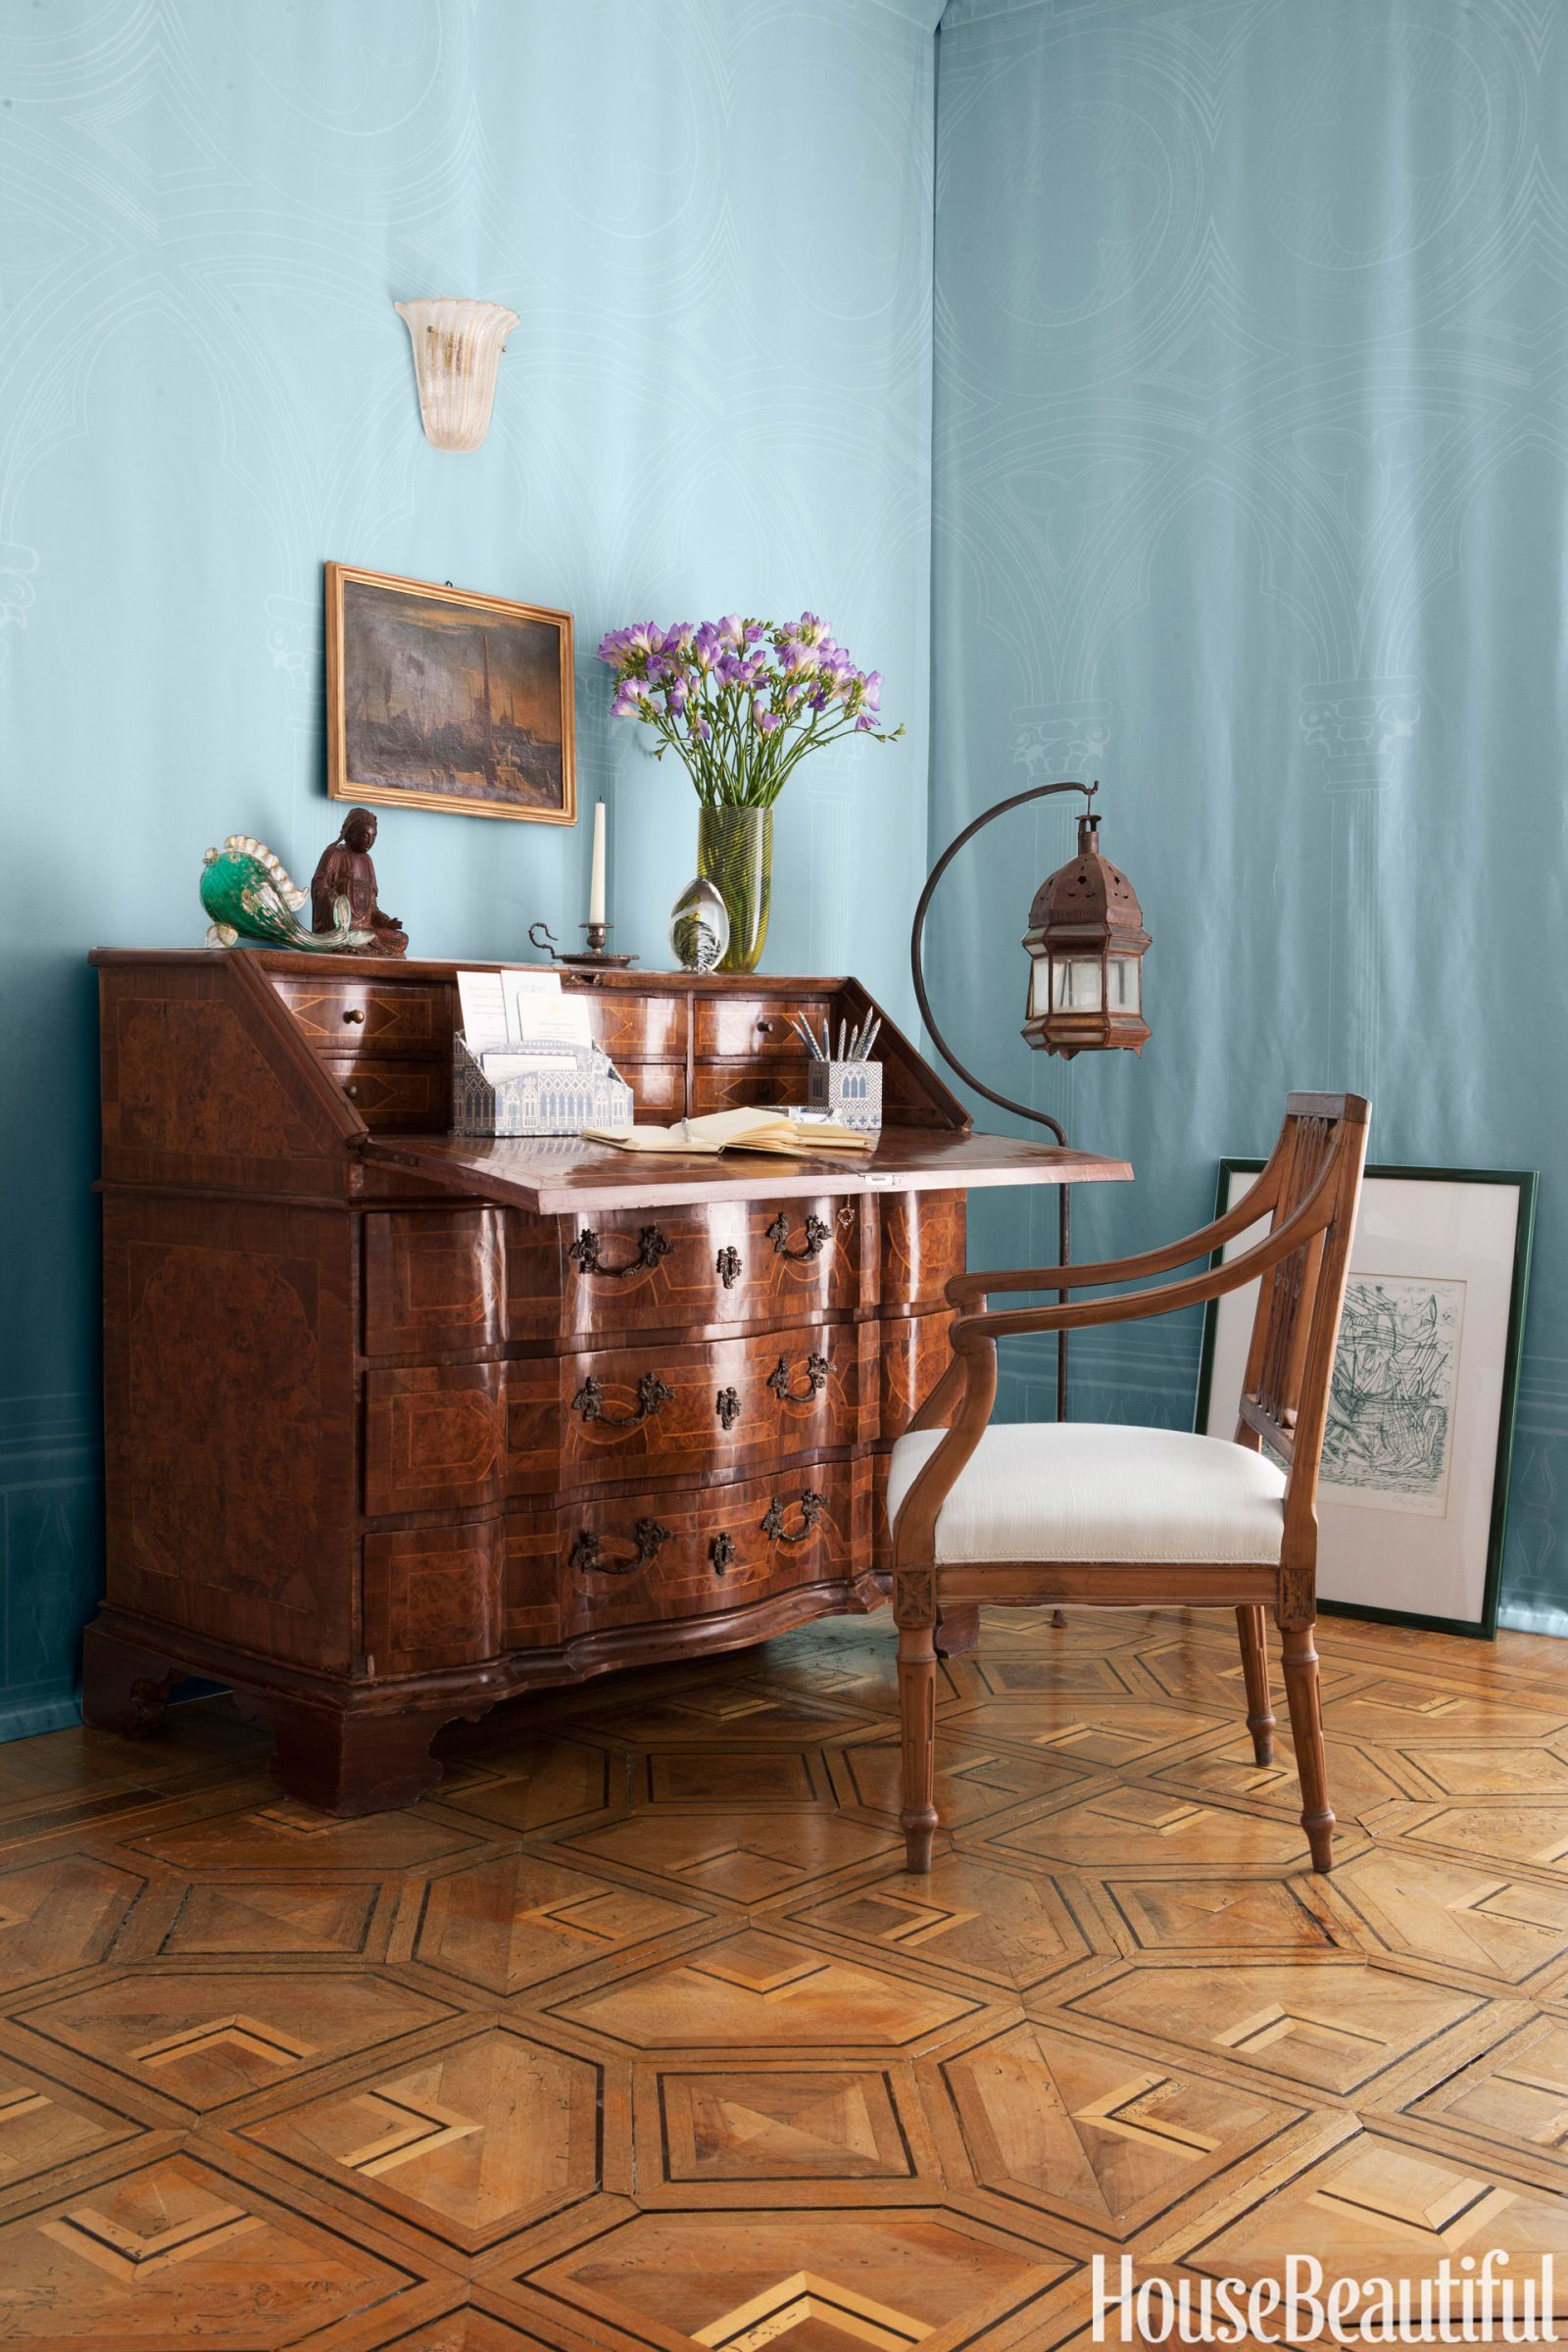 50 Stylish Home Offices & Decorating Ideas